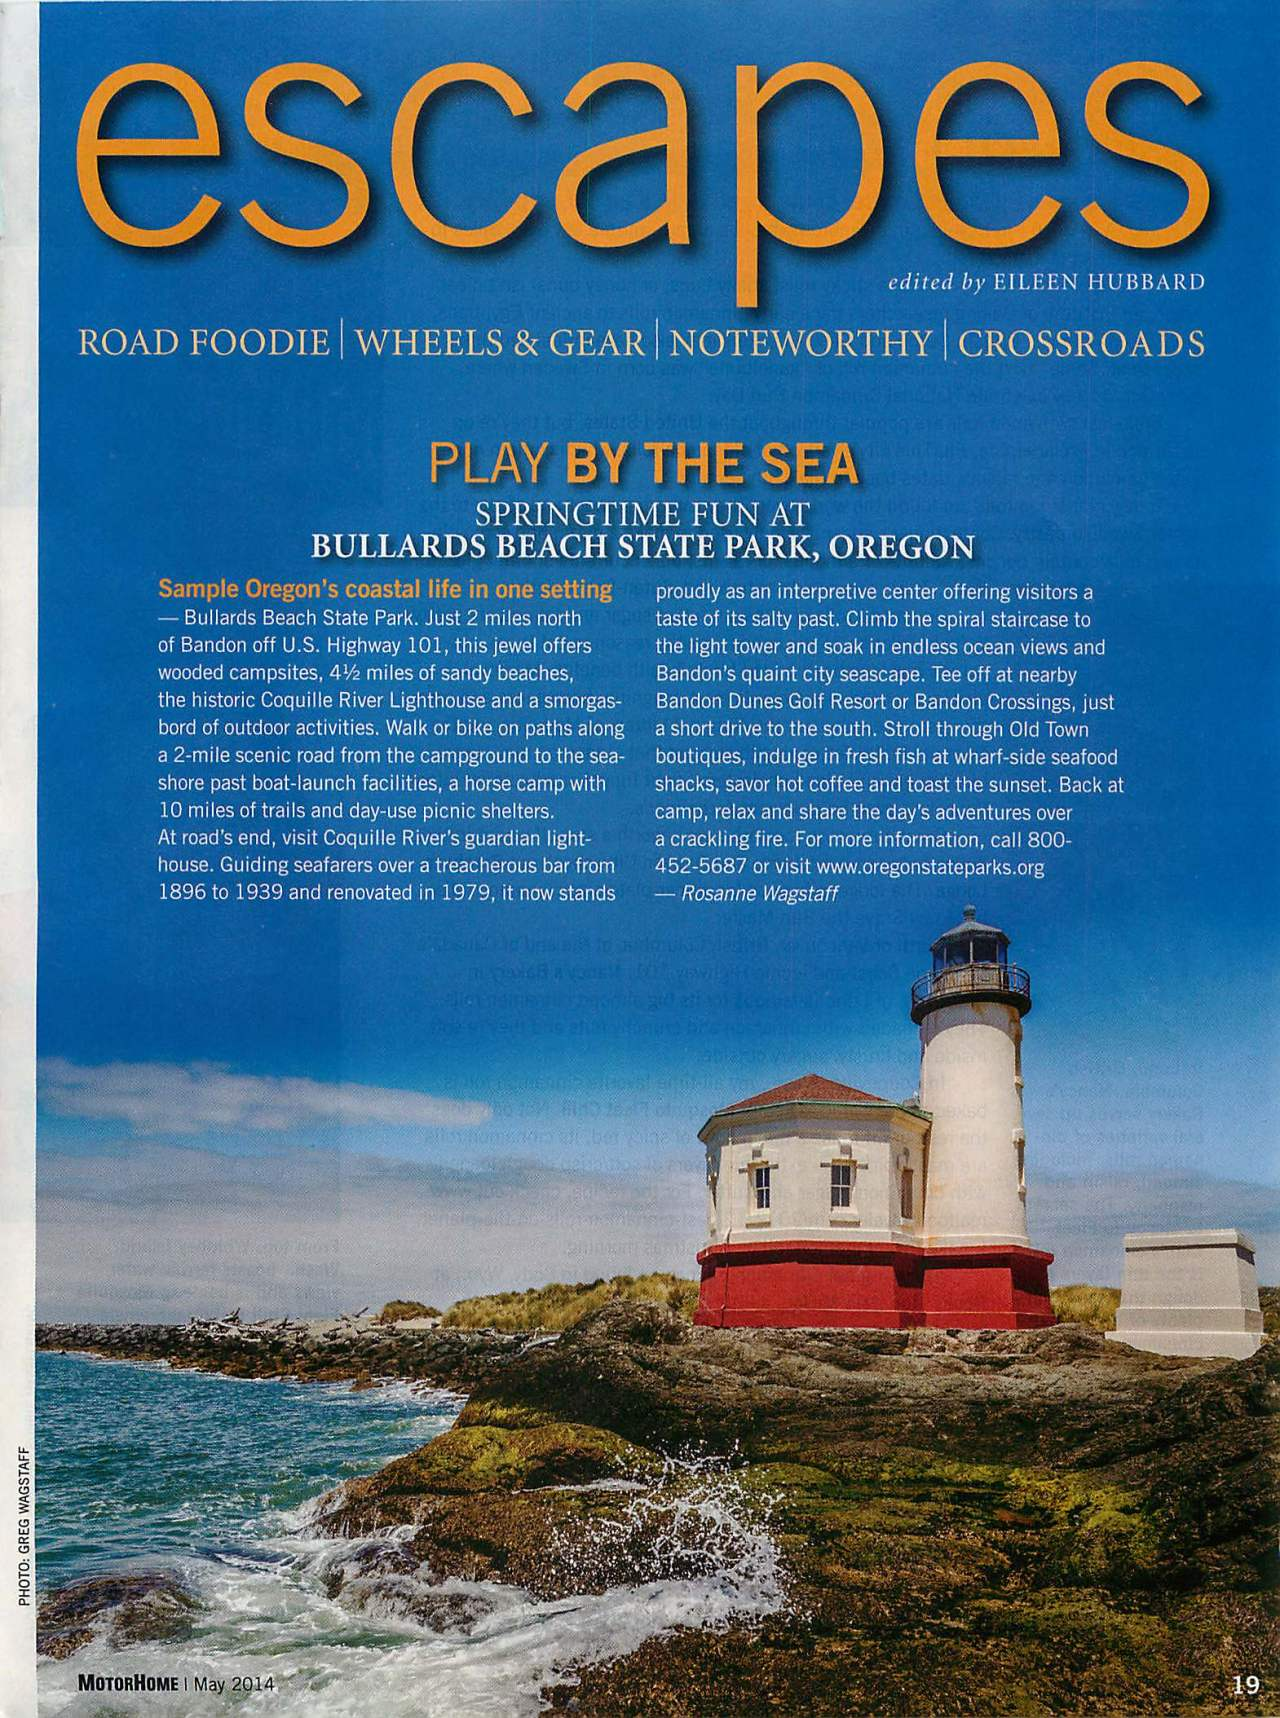 Our Article and Photo in MotorHome Magazine!